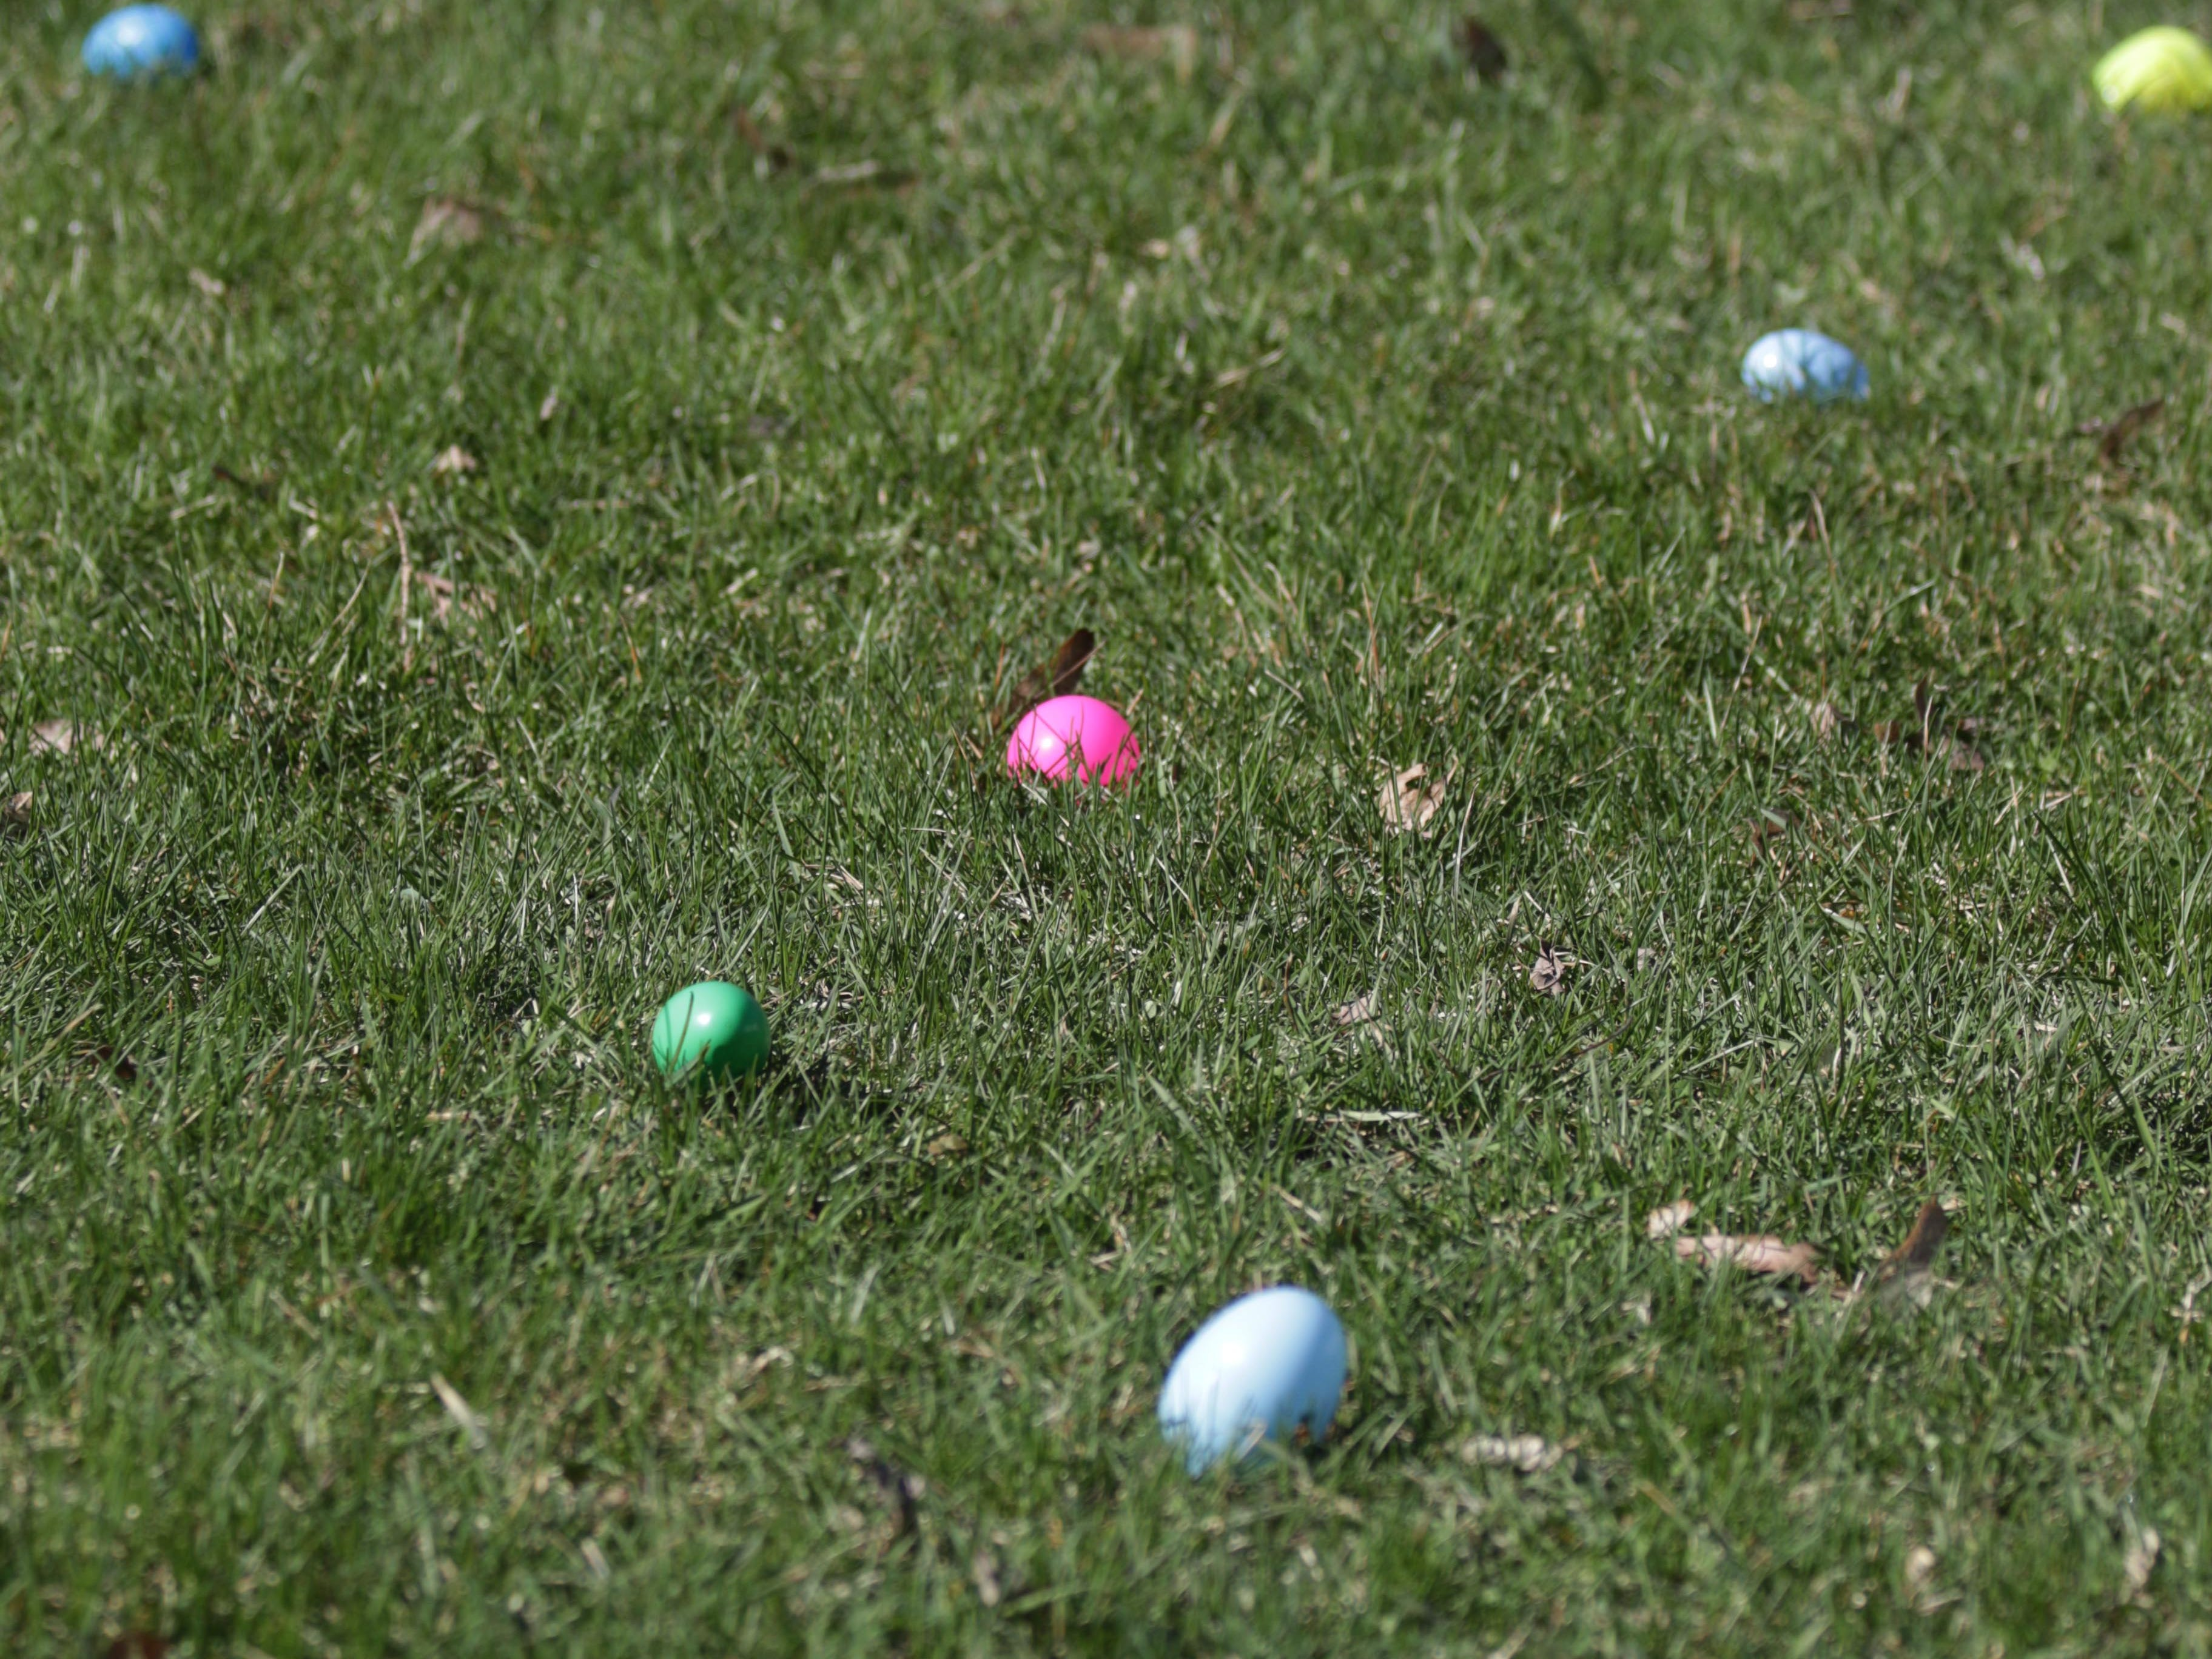 Easter eggs filled with treats are scattered on the lawn of Dan and Kahty Hocevar's lawn, Saturday, April 20, 2019, in Sheboygan Falls, Wis.  This years marks 25 years for the Hocevar Family holding an Easter egg hunt at their home, according to Kathy Hocevar.